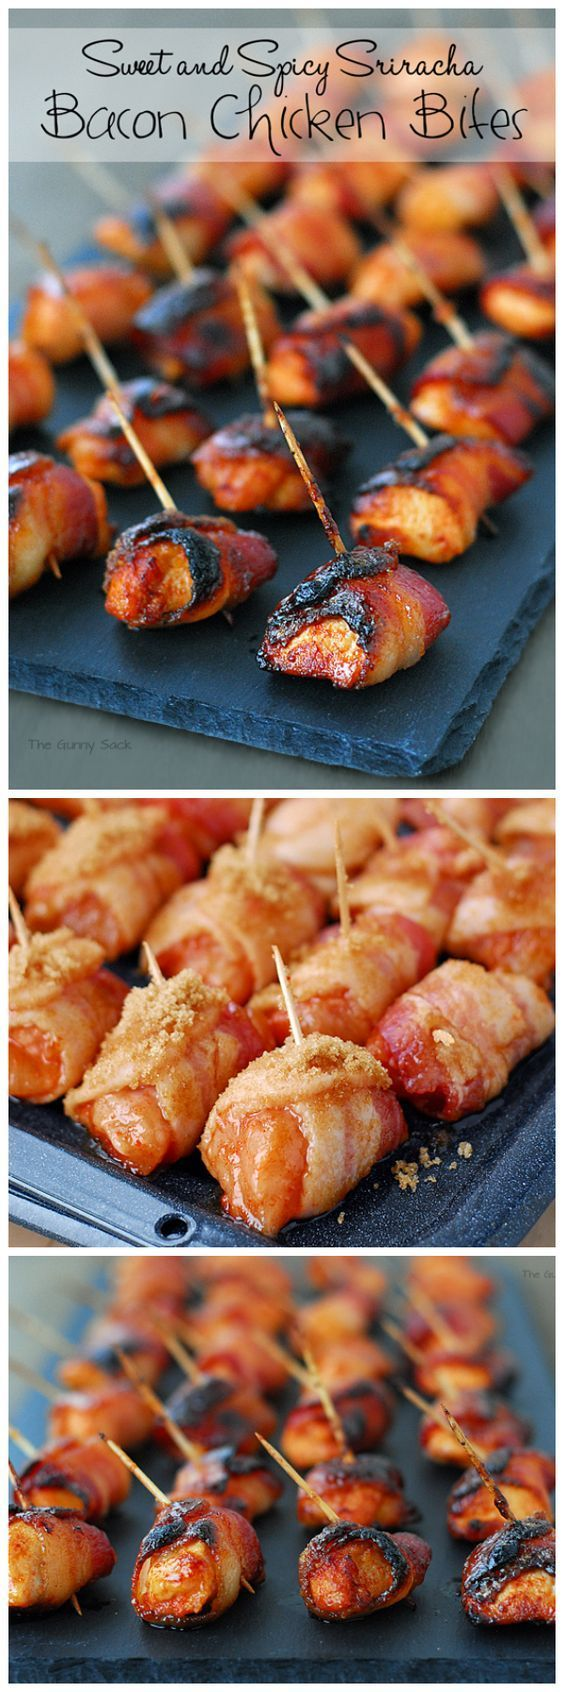 My mom just make these and everyone went CRAZY for the chicken bacon combo! Going to make this appetizer again soon.